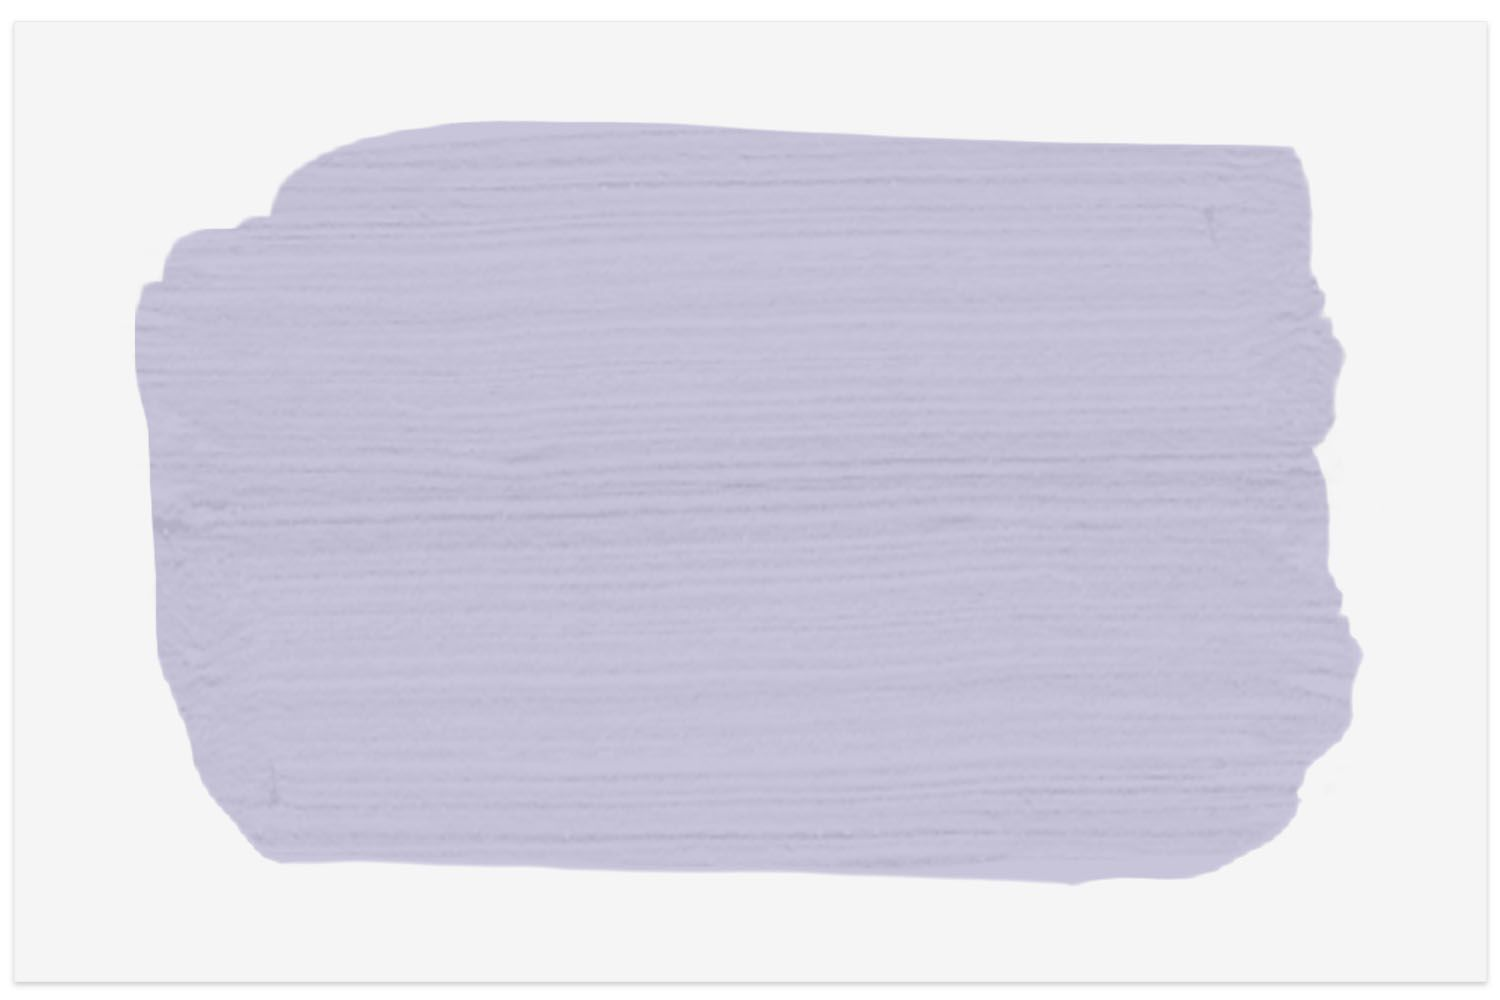 Benjamin Moore French Lilac paint swatch